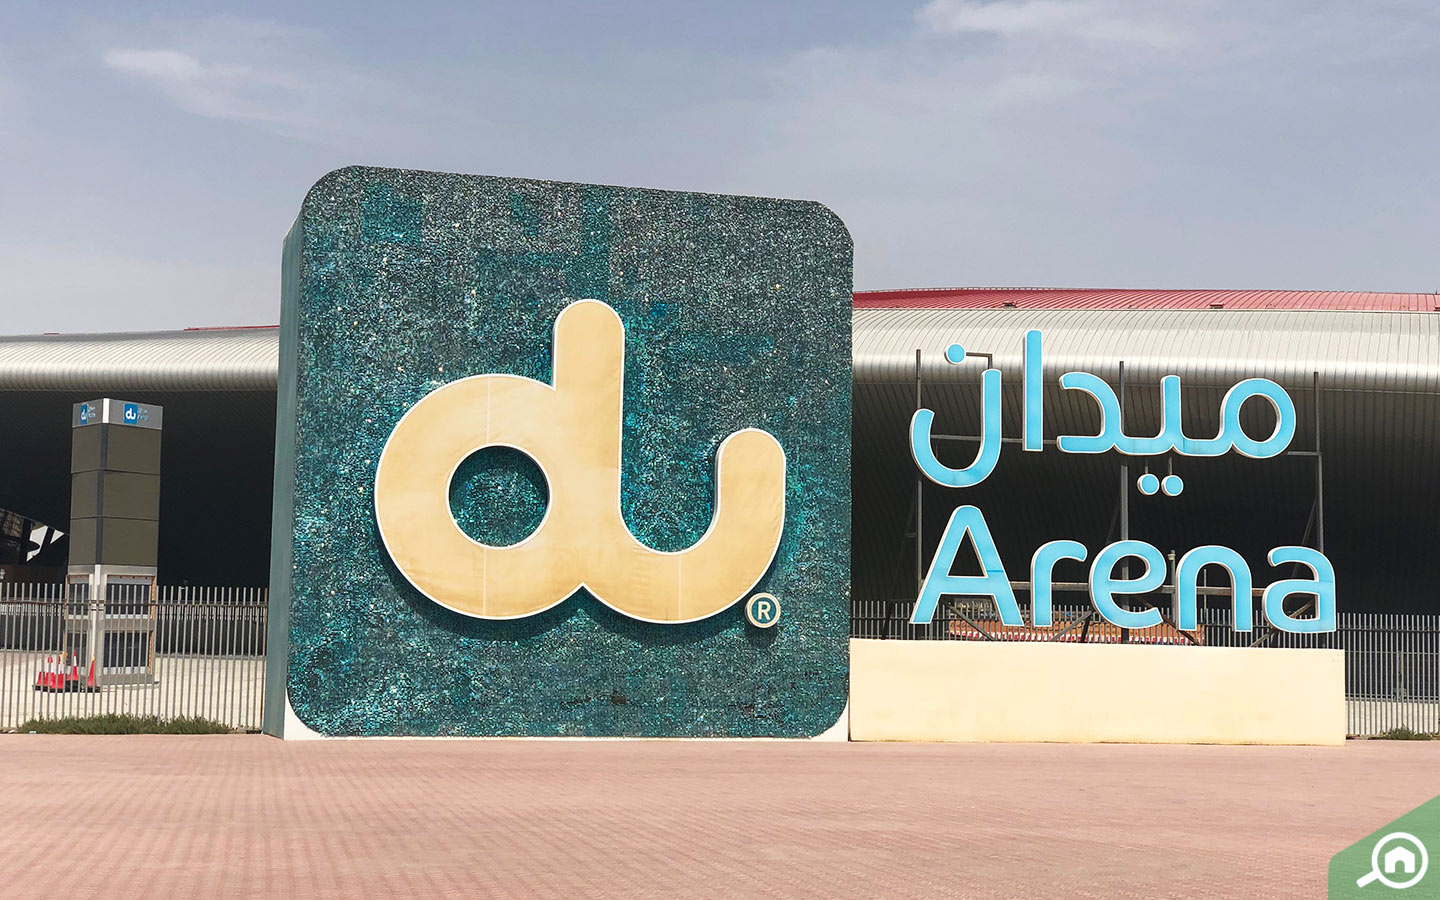 Du Arena on Yas island